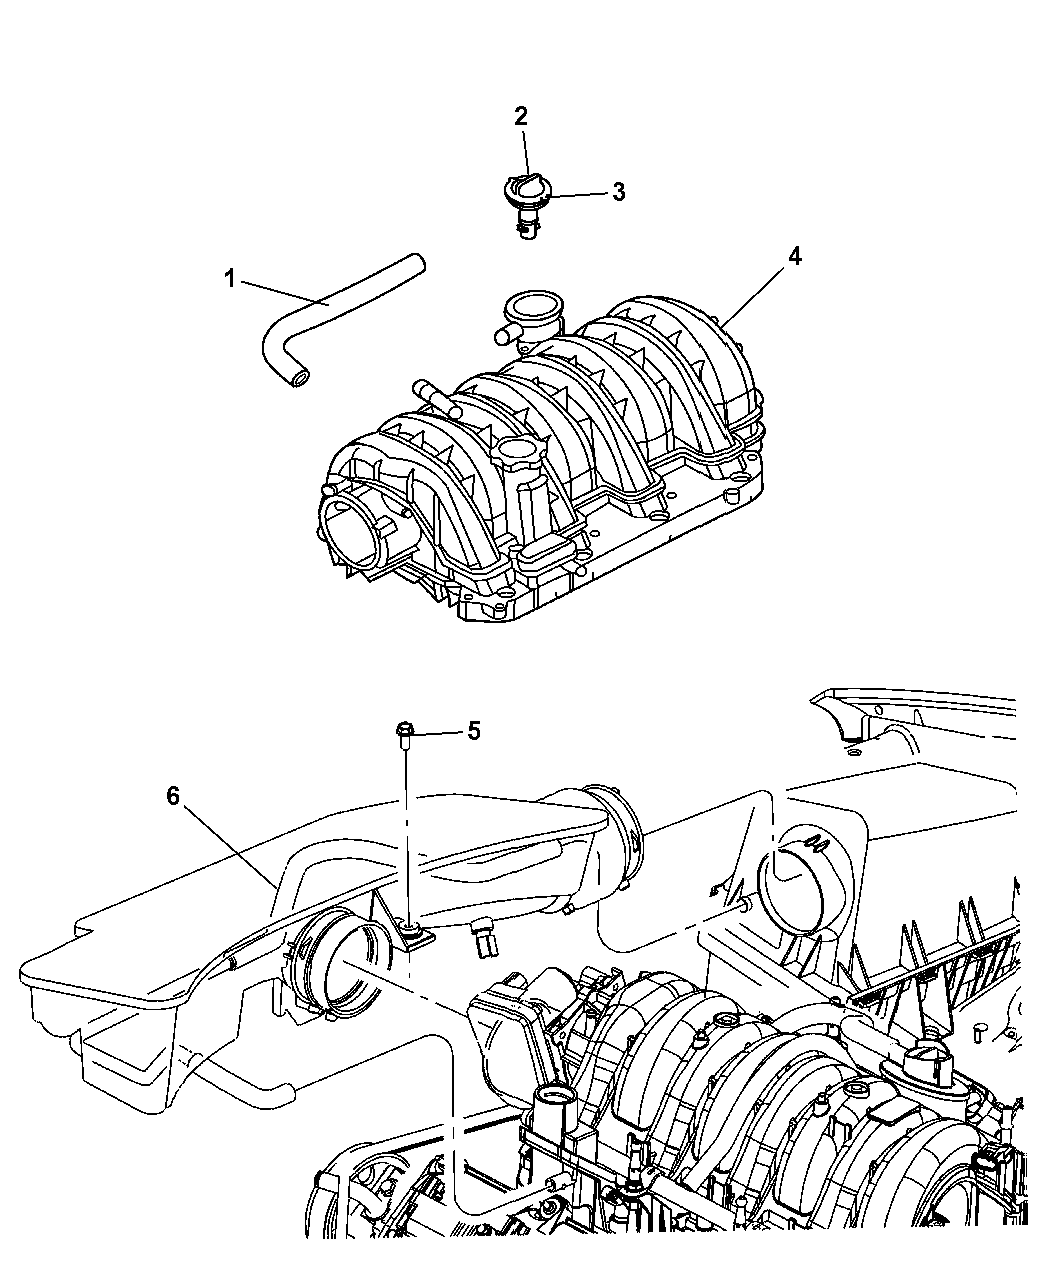 2011 jeep grand cherokee crankcase ventilation - thumbnail 1